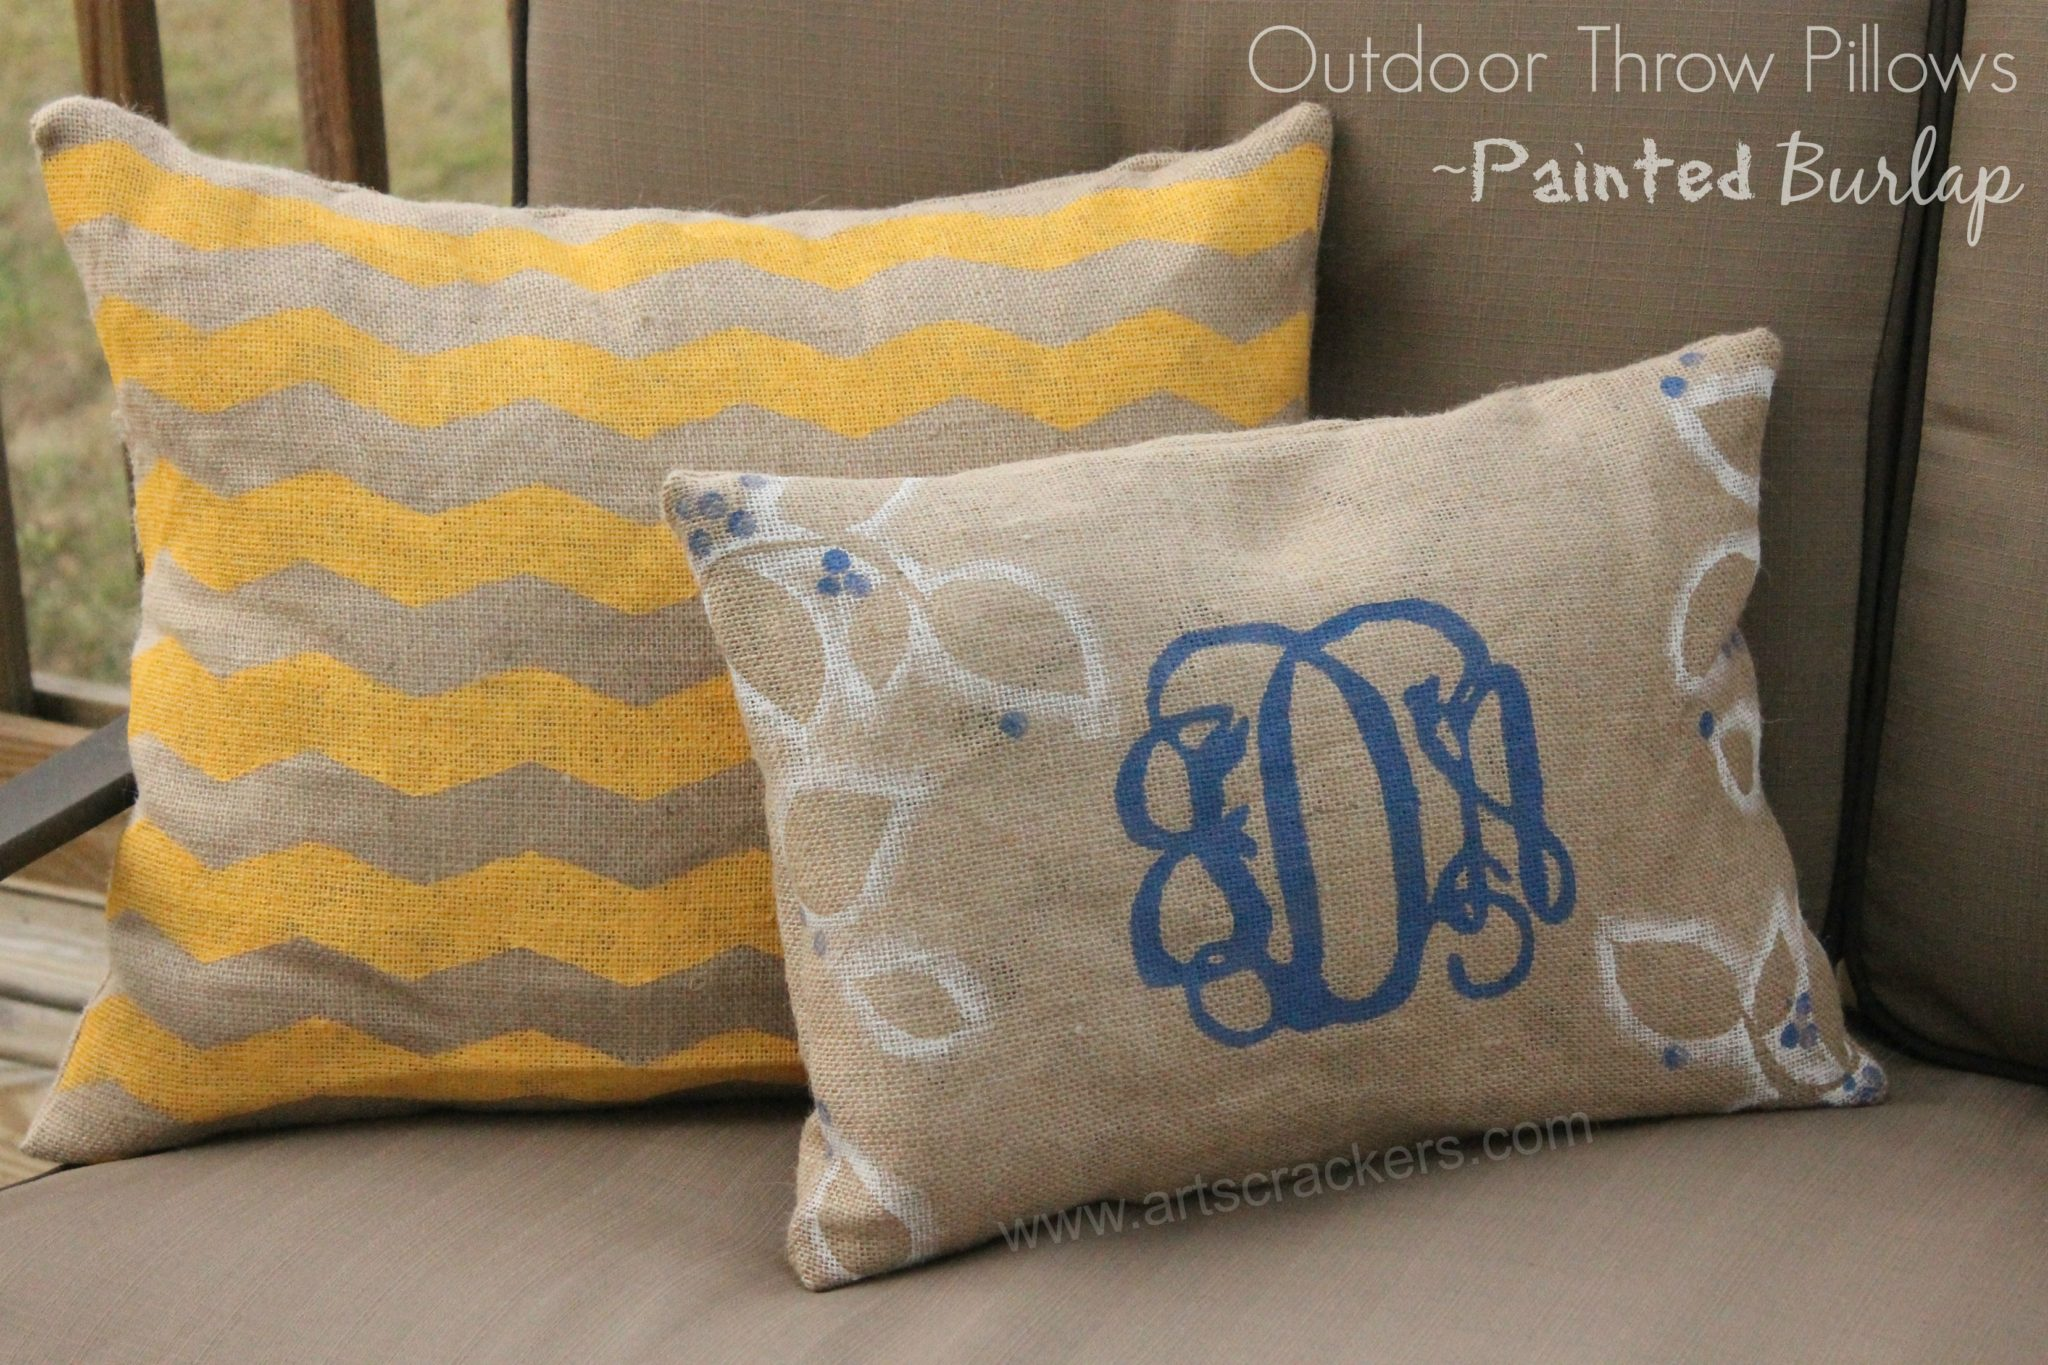 Outdoor Throw Pillows Painted Burlap